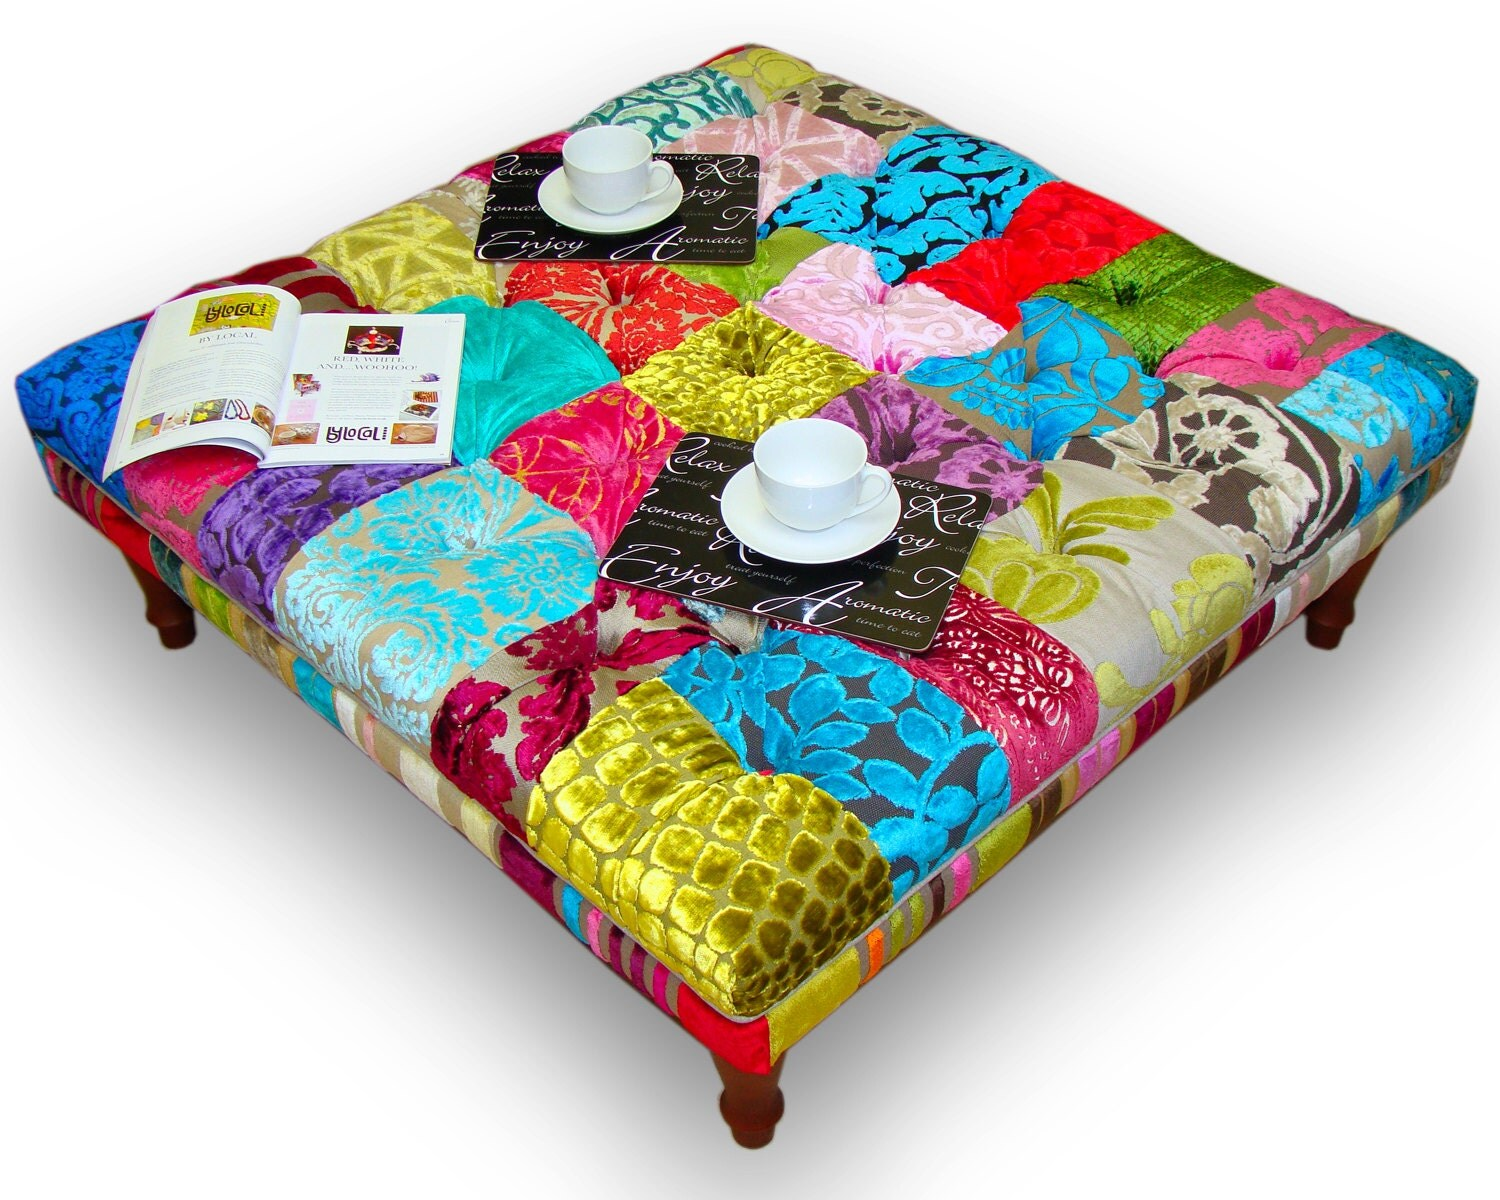 Large patchwork footstoolcoffee table in Designers Guild : ilfullxfull450351750qv77 from www.etsy.com size 1500 x 1200 jpeg 467kB